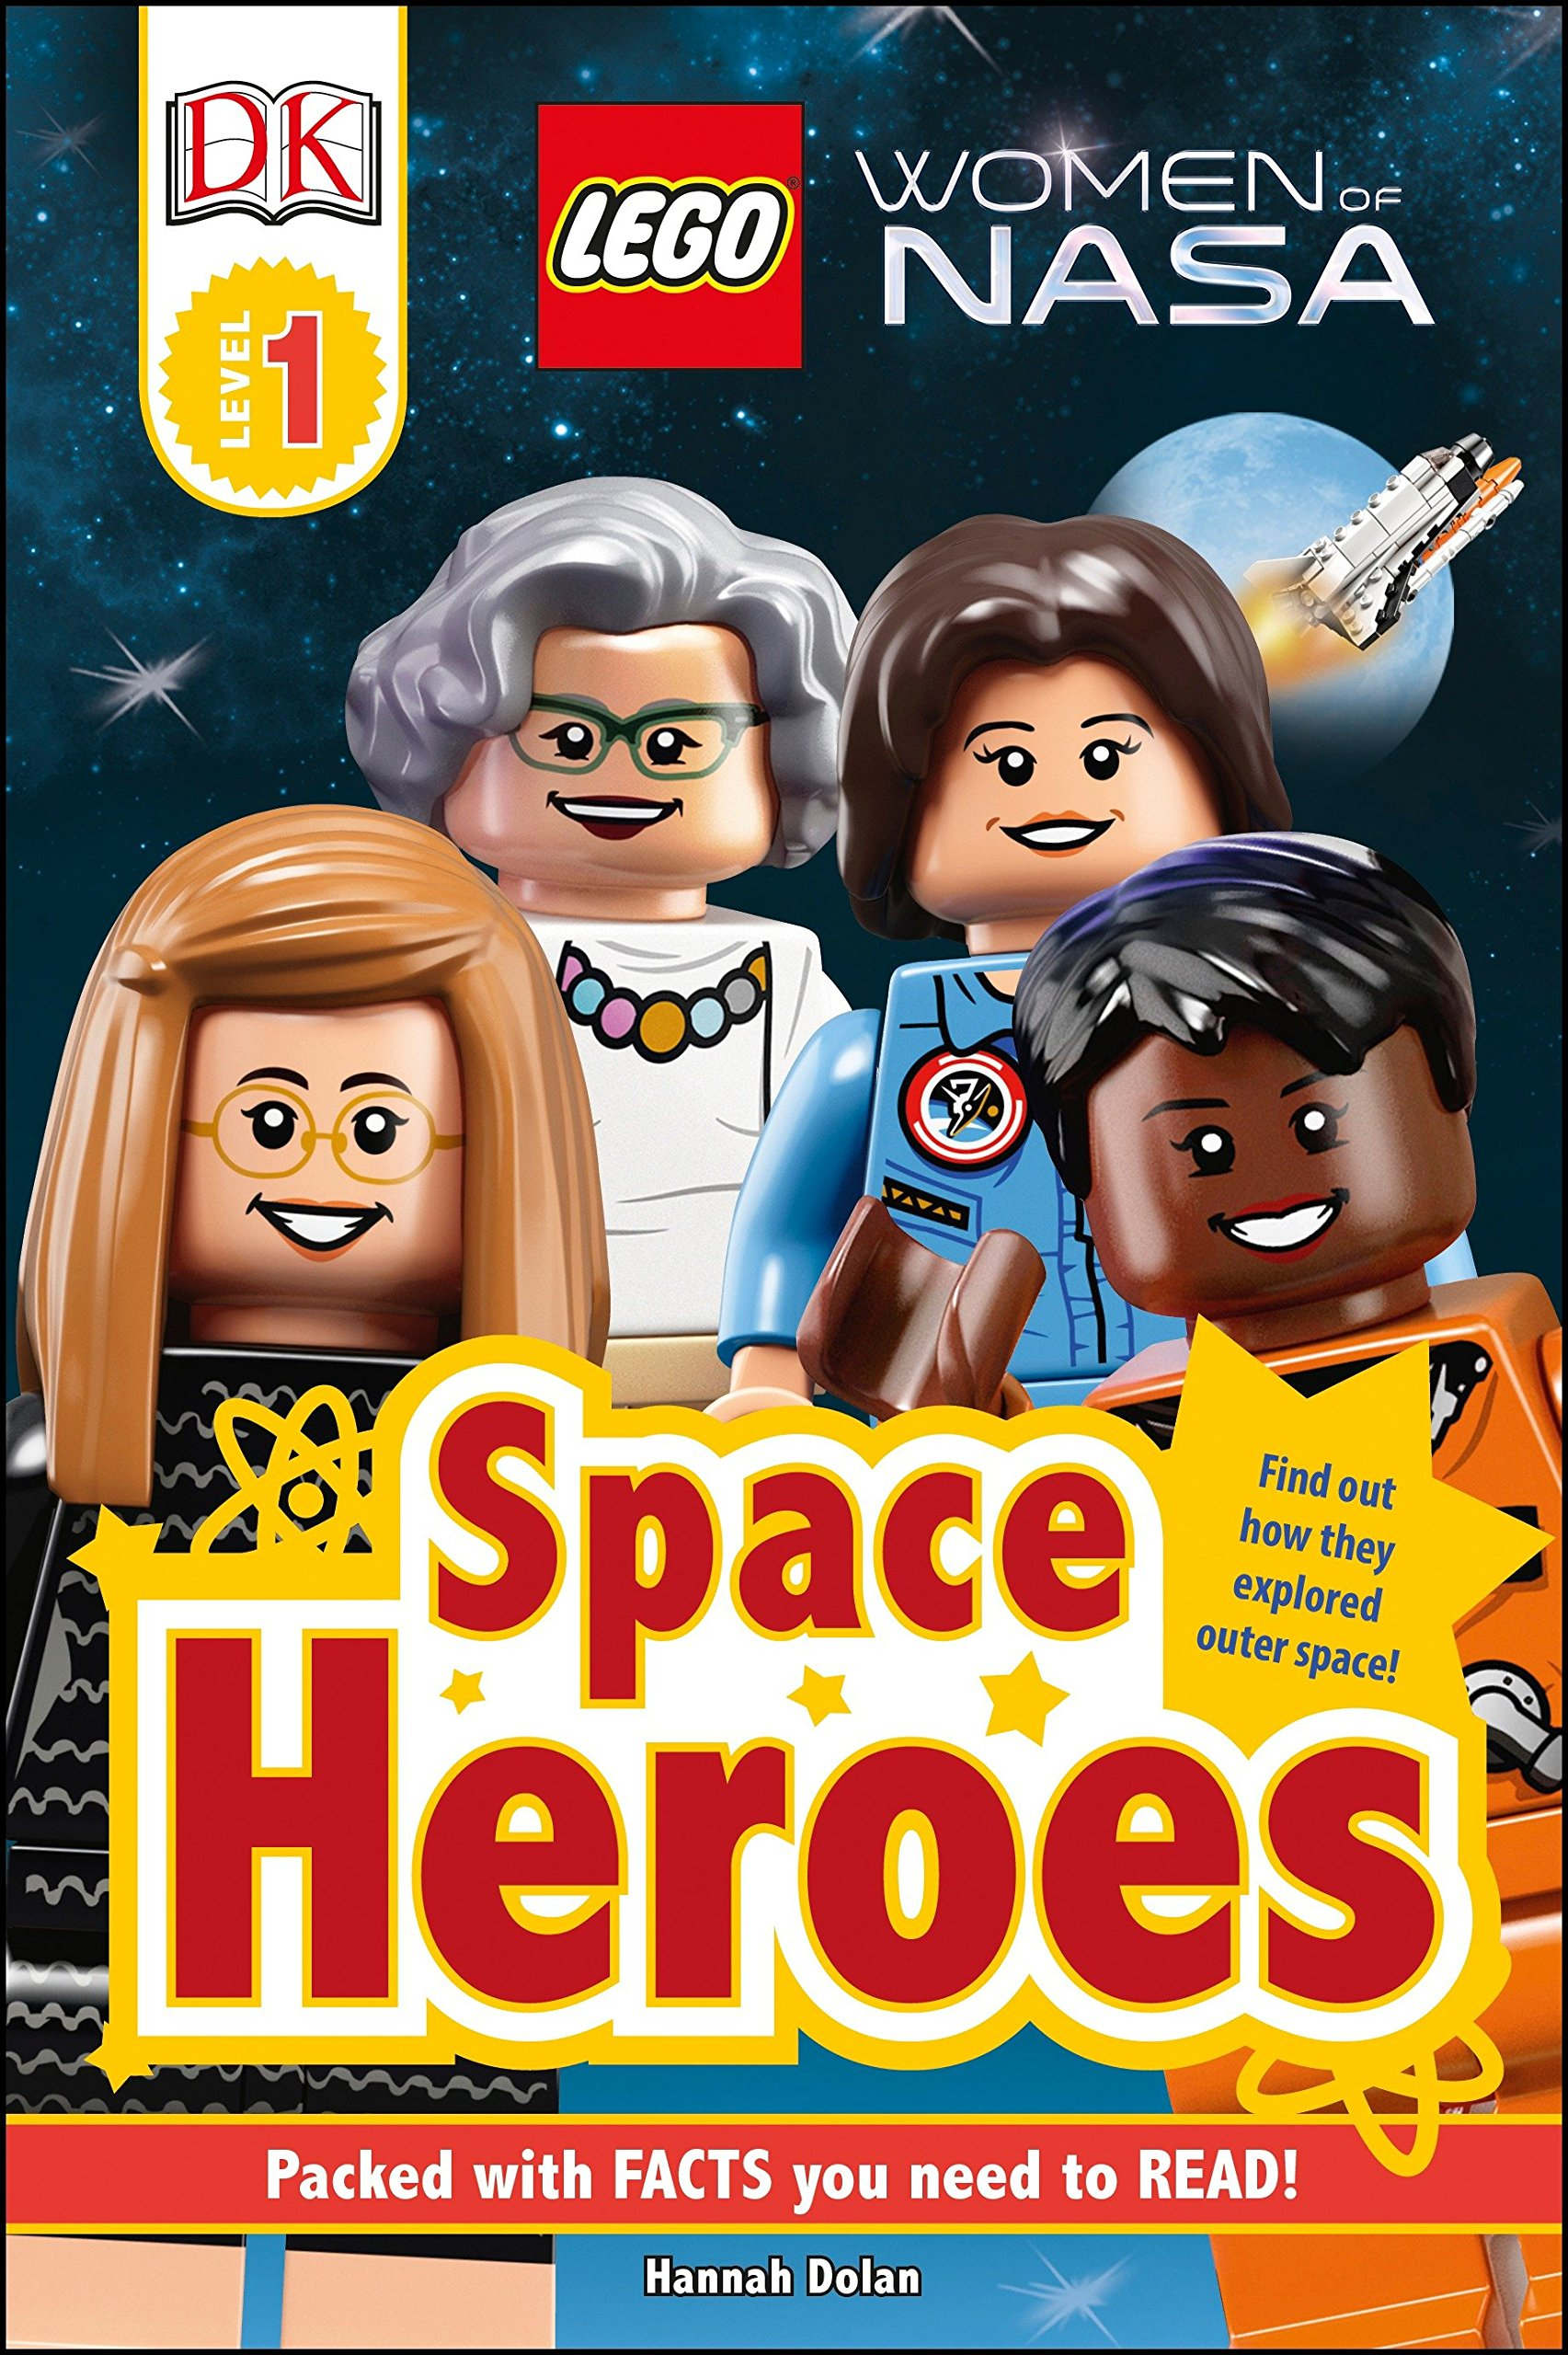 Image result for lego women of nasa book